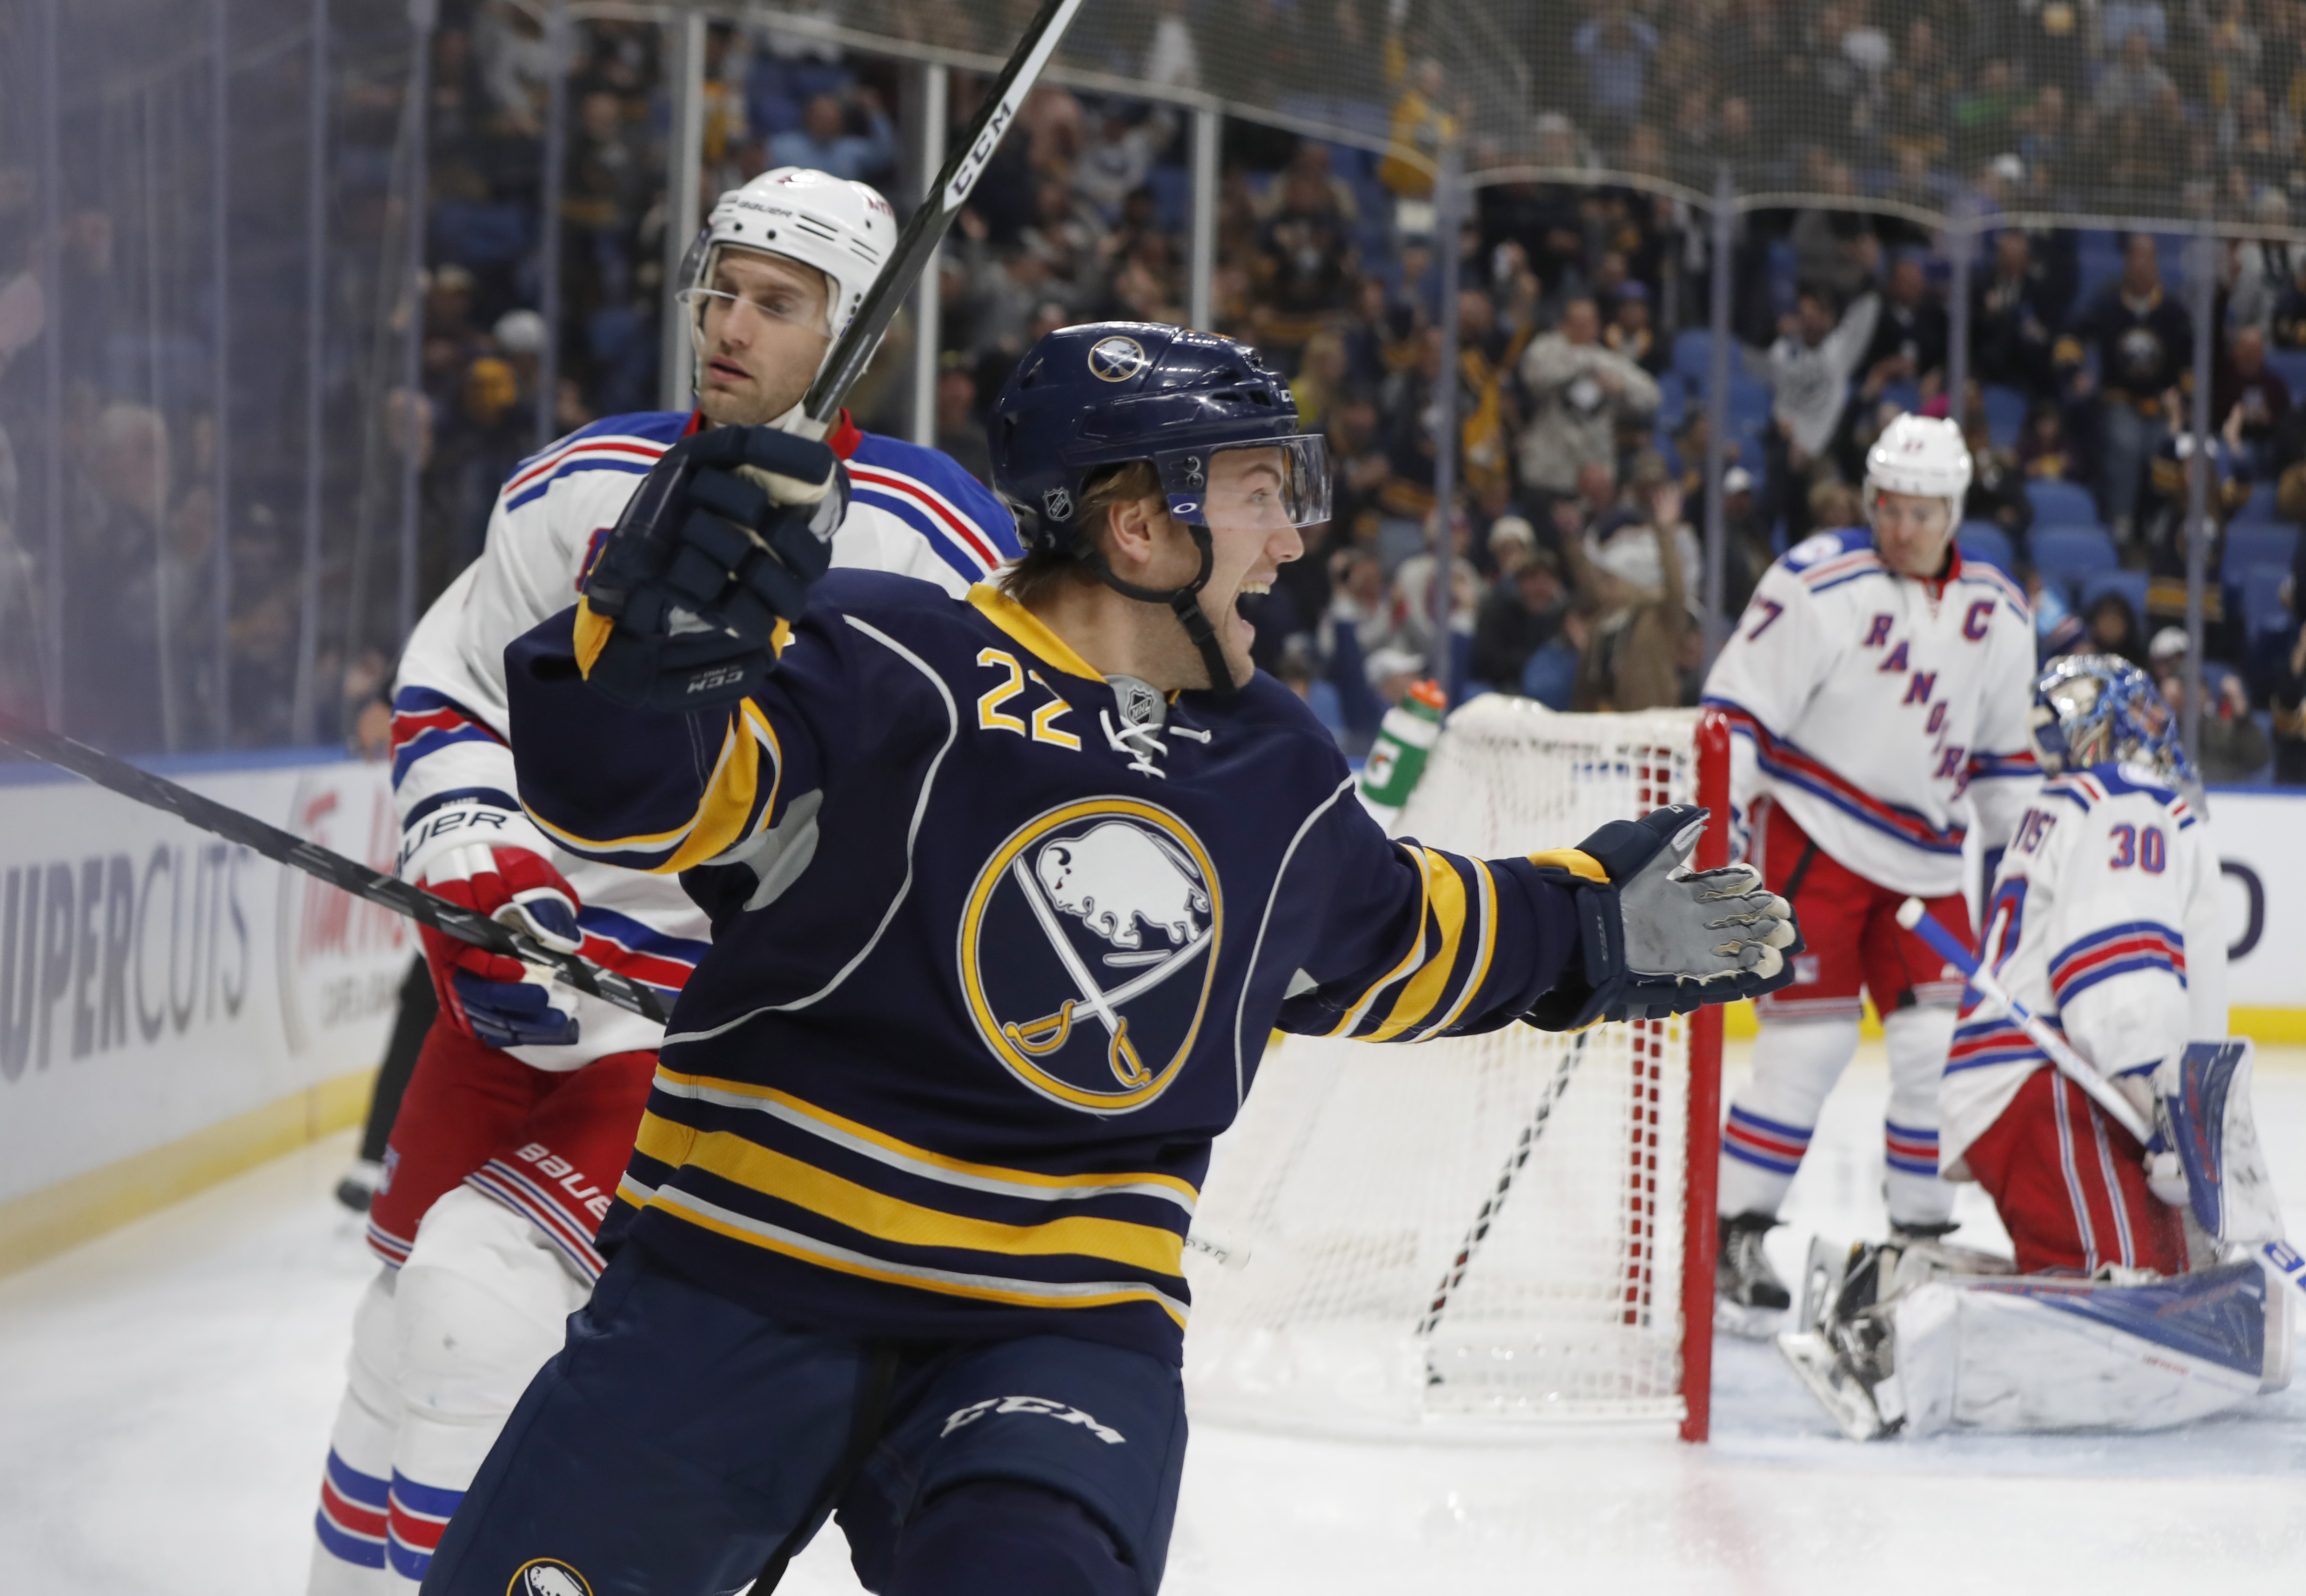 Johan Larsson reacts with excited disbelief after Buffalo scores just 18 seconds into the game. (Harry Scull Jr./Buffalo News)